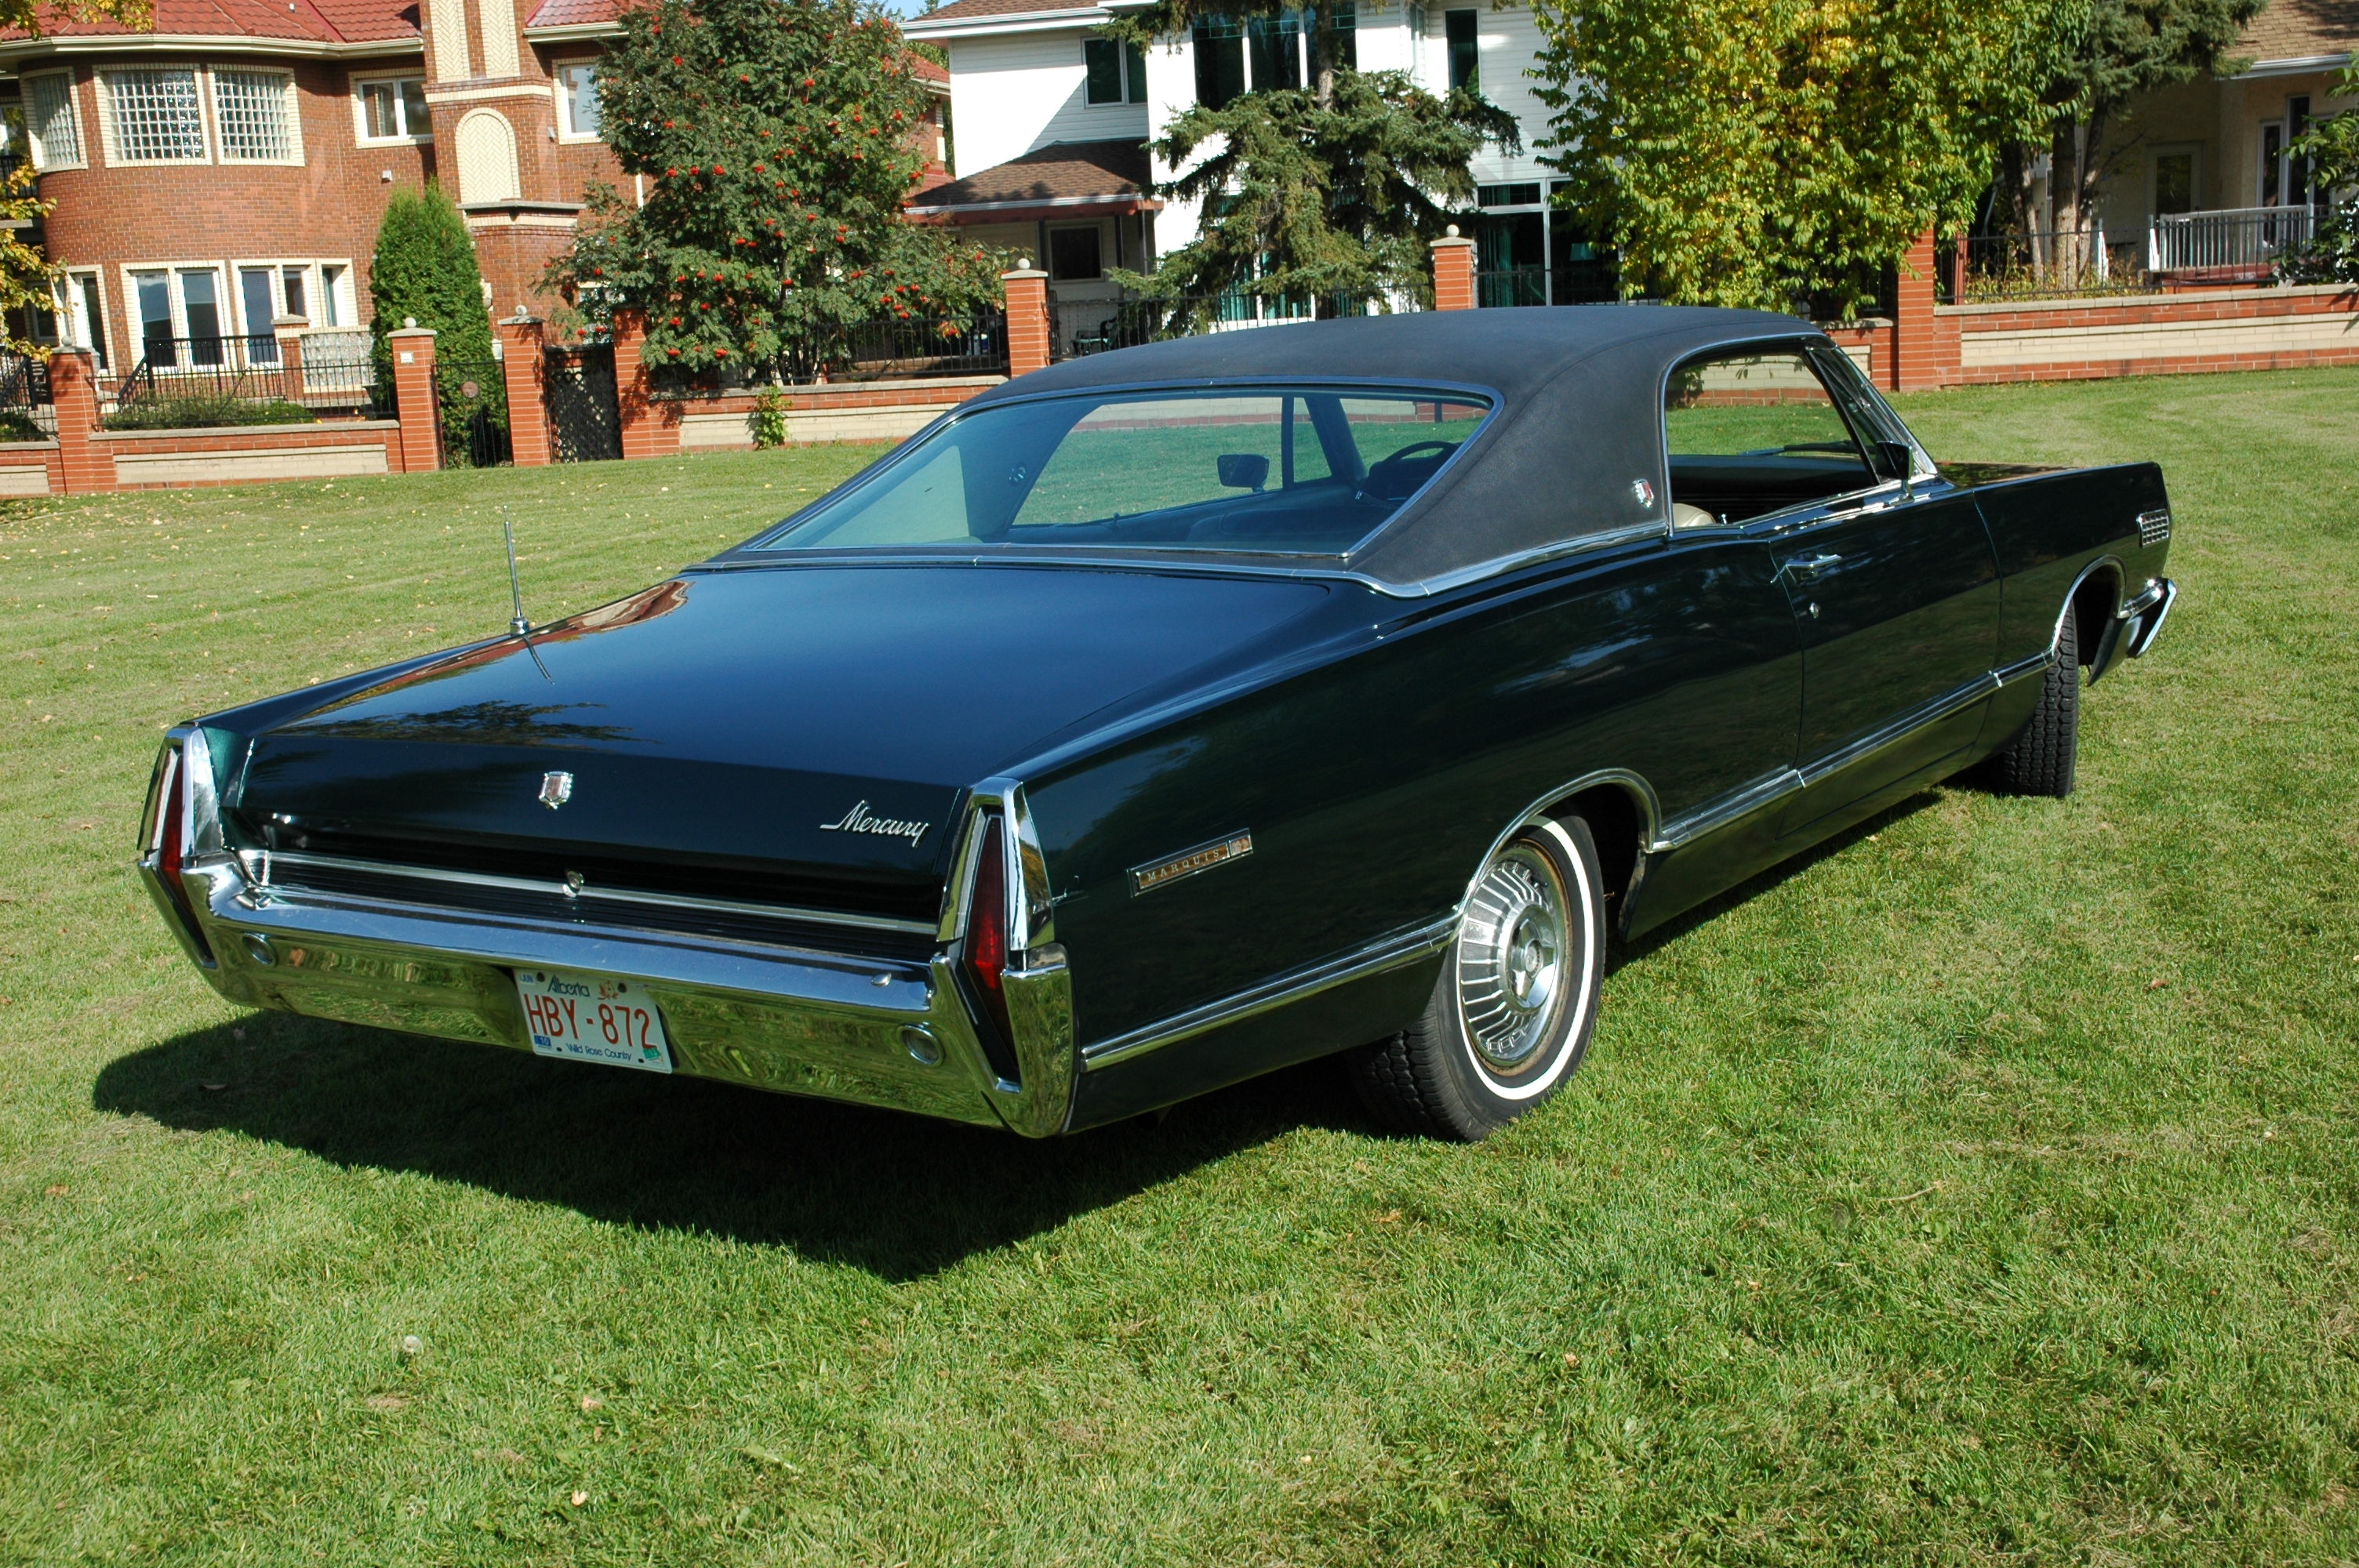 1967 Mercury Marquis Mercury Automobile History Super